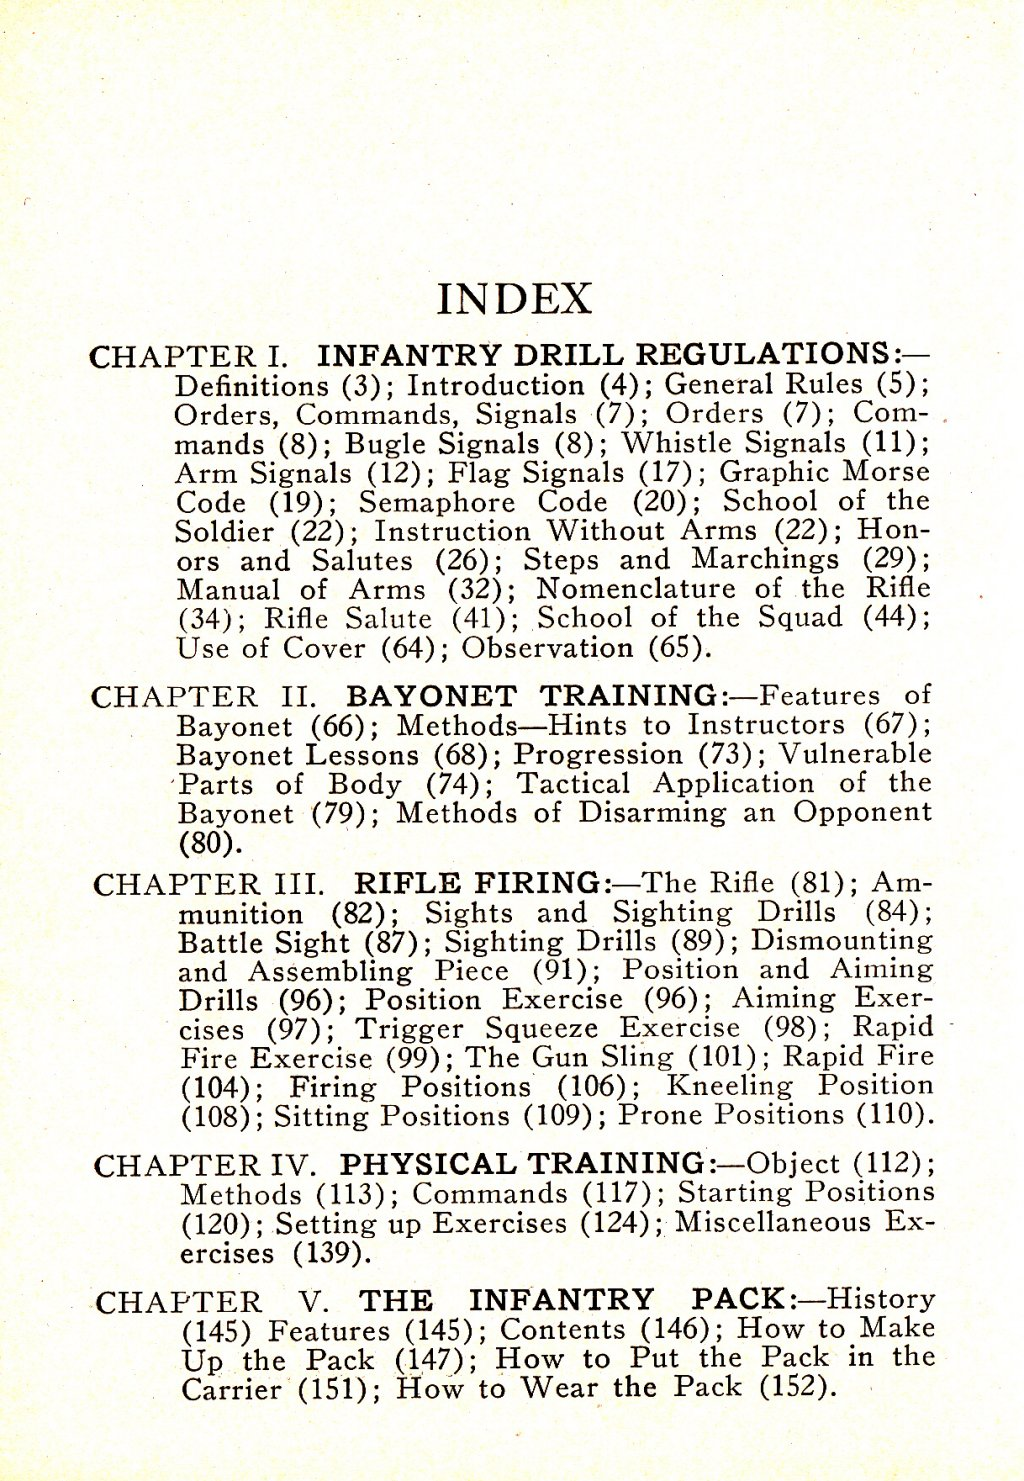 314th Infantry Regiment - Infantry Soldiers Handbook - Waldron - Page 246